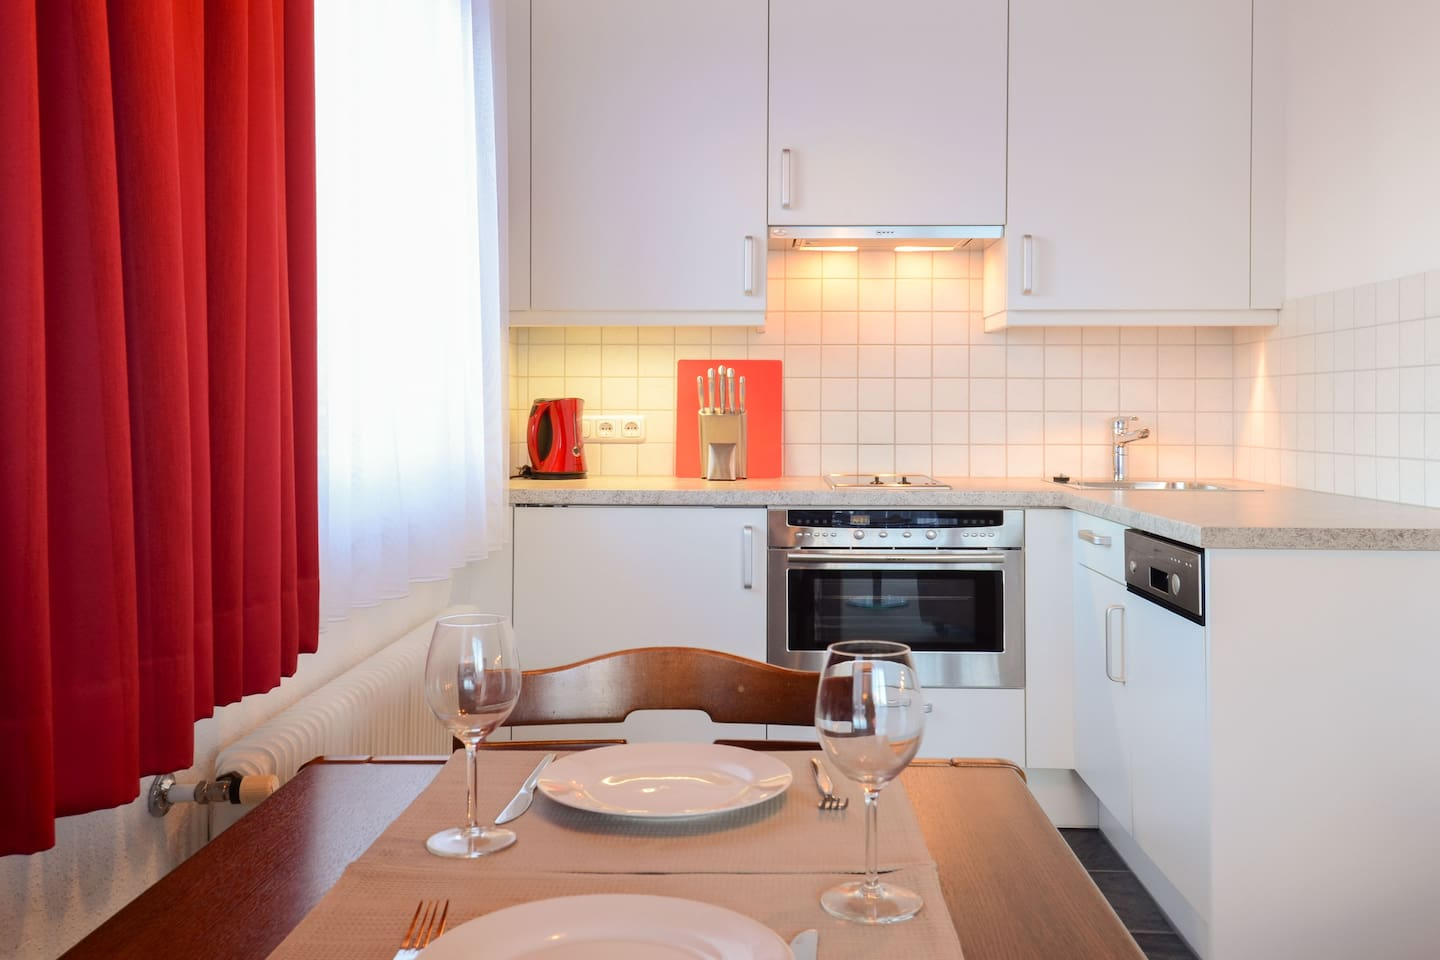 Kitchen fully equipped with coffee machine, dishwasher,oven, microwave and refrigerator